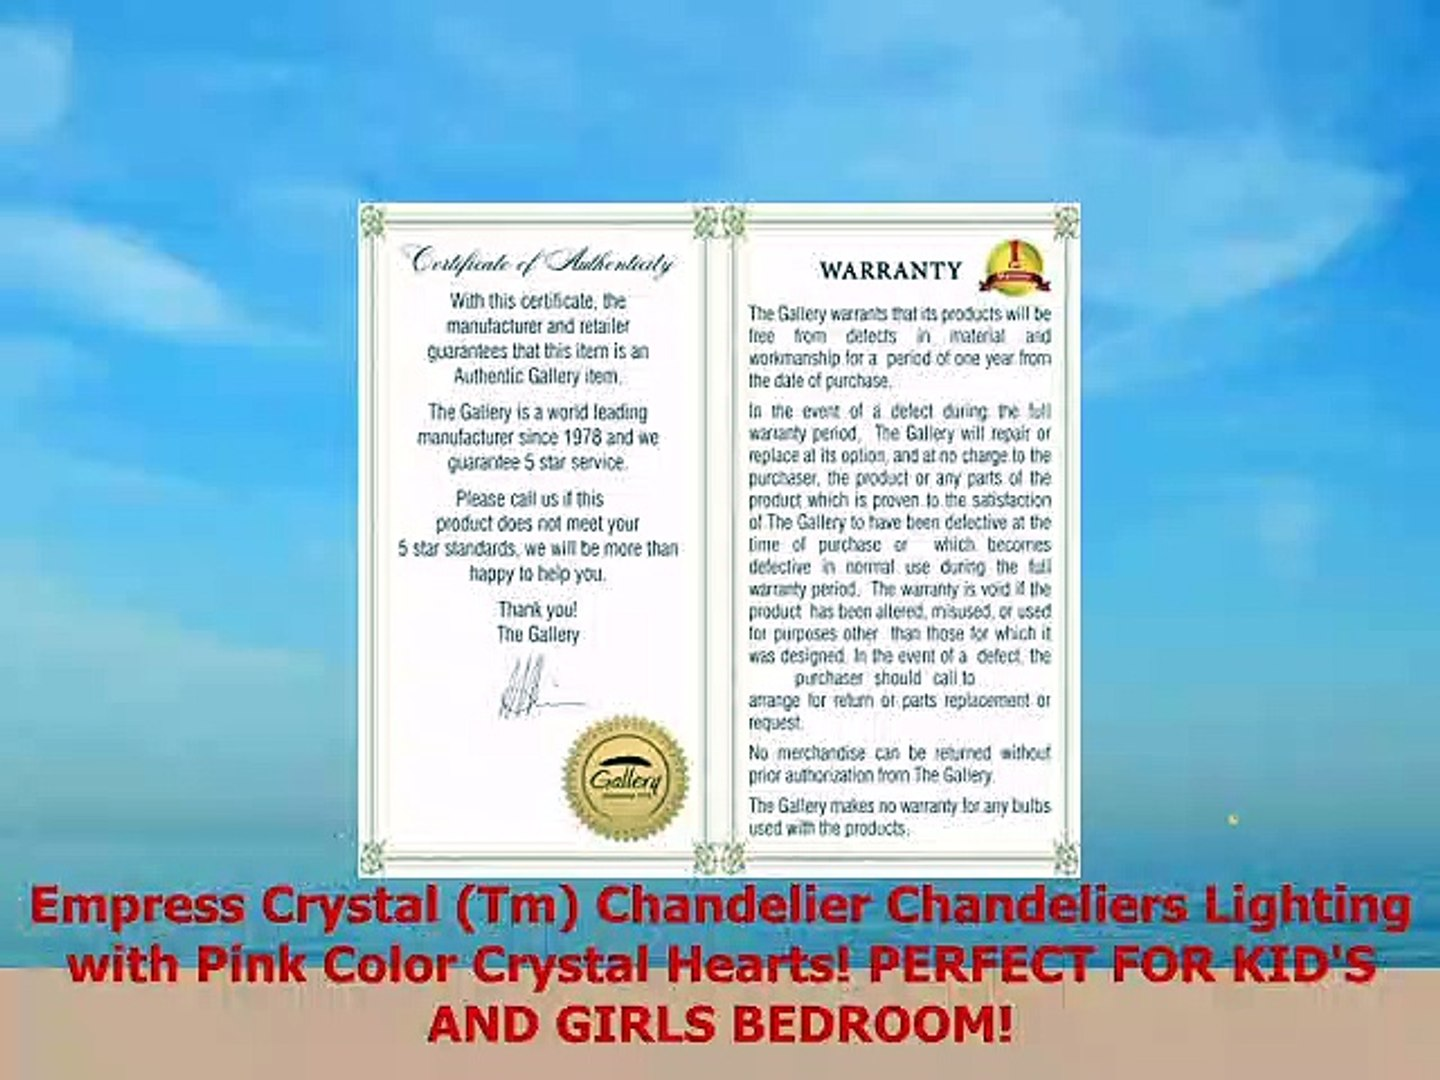 Empress Crystal Chandeliers Lighting with Pink Color Crystal Hearts! Tm